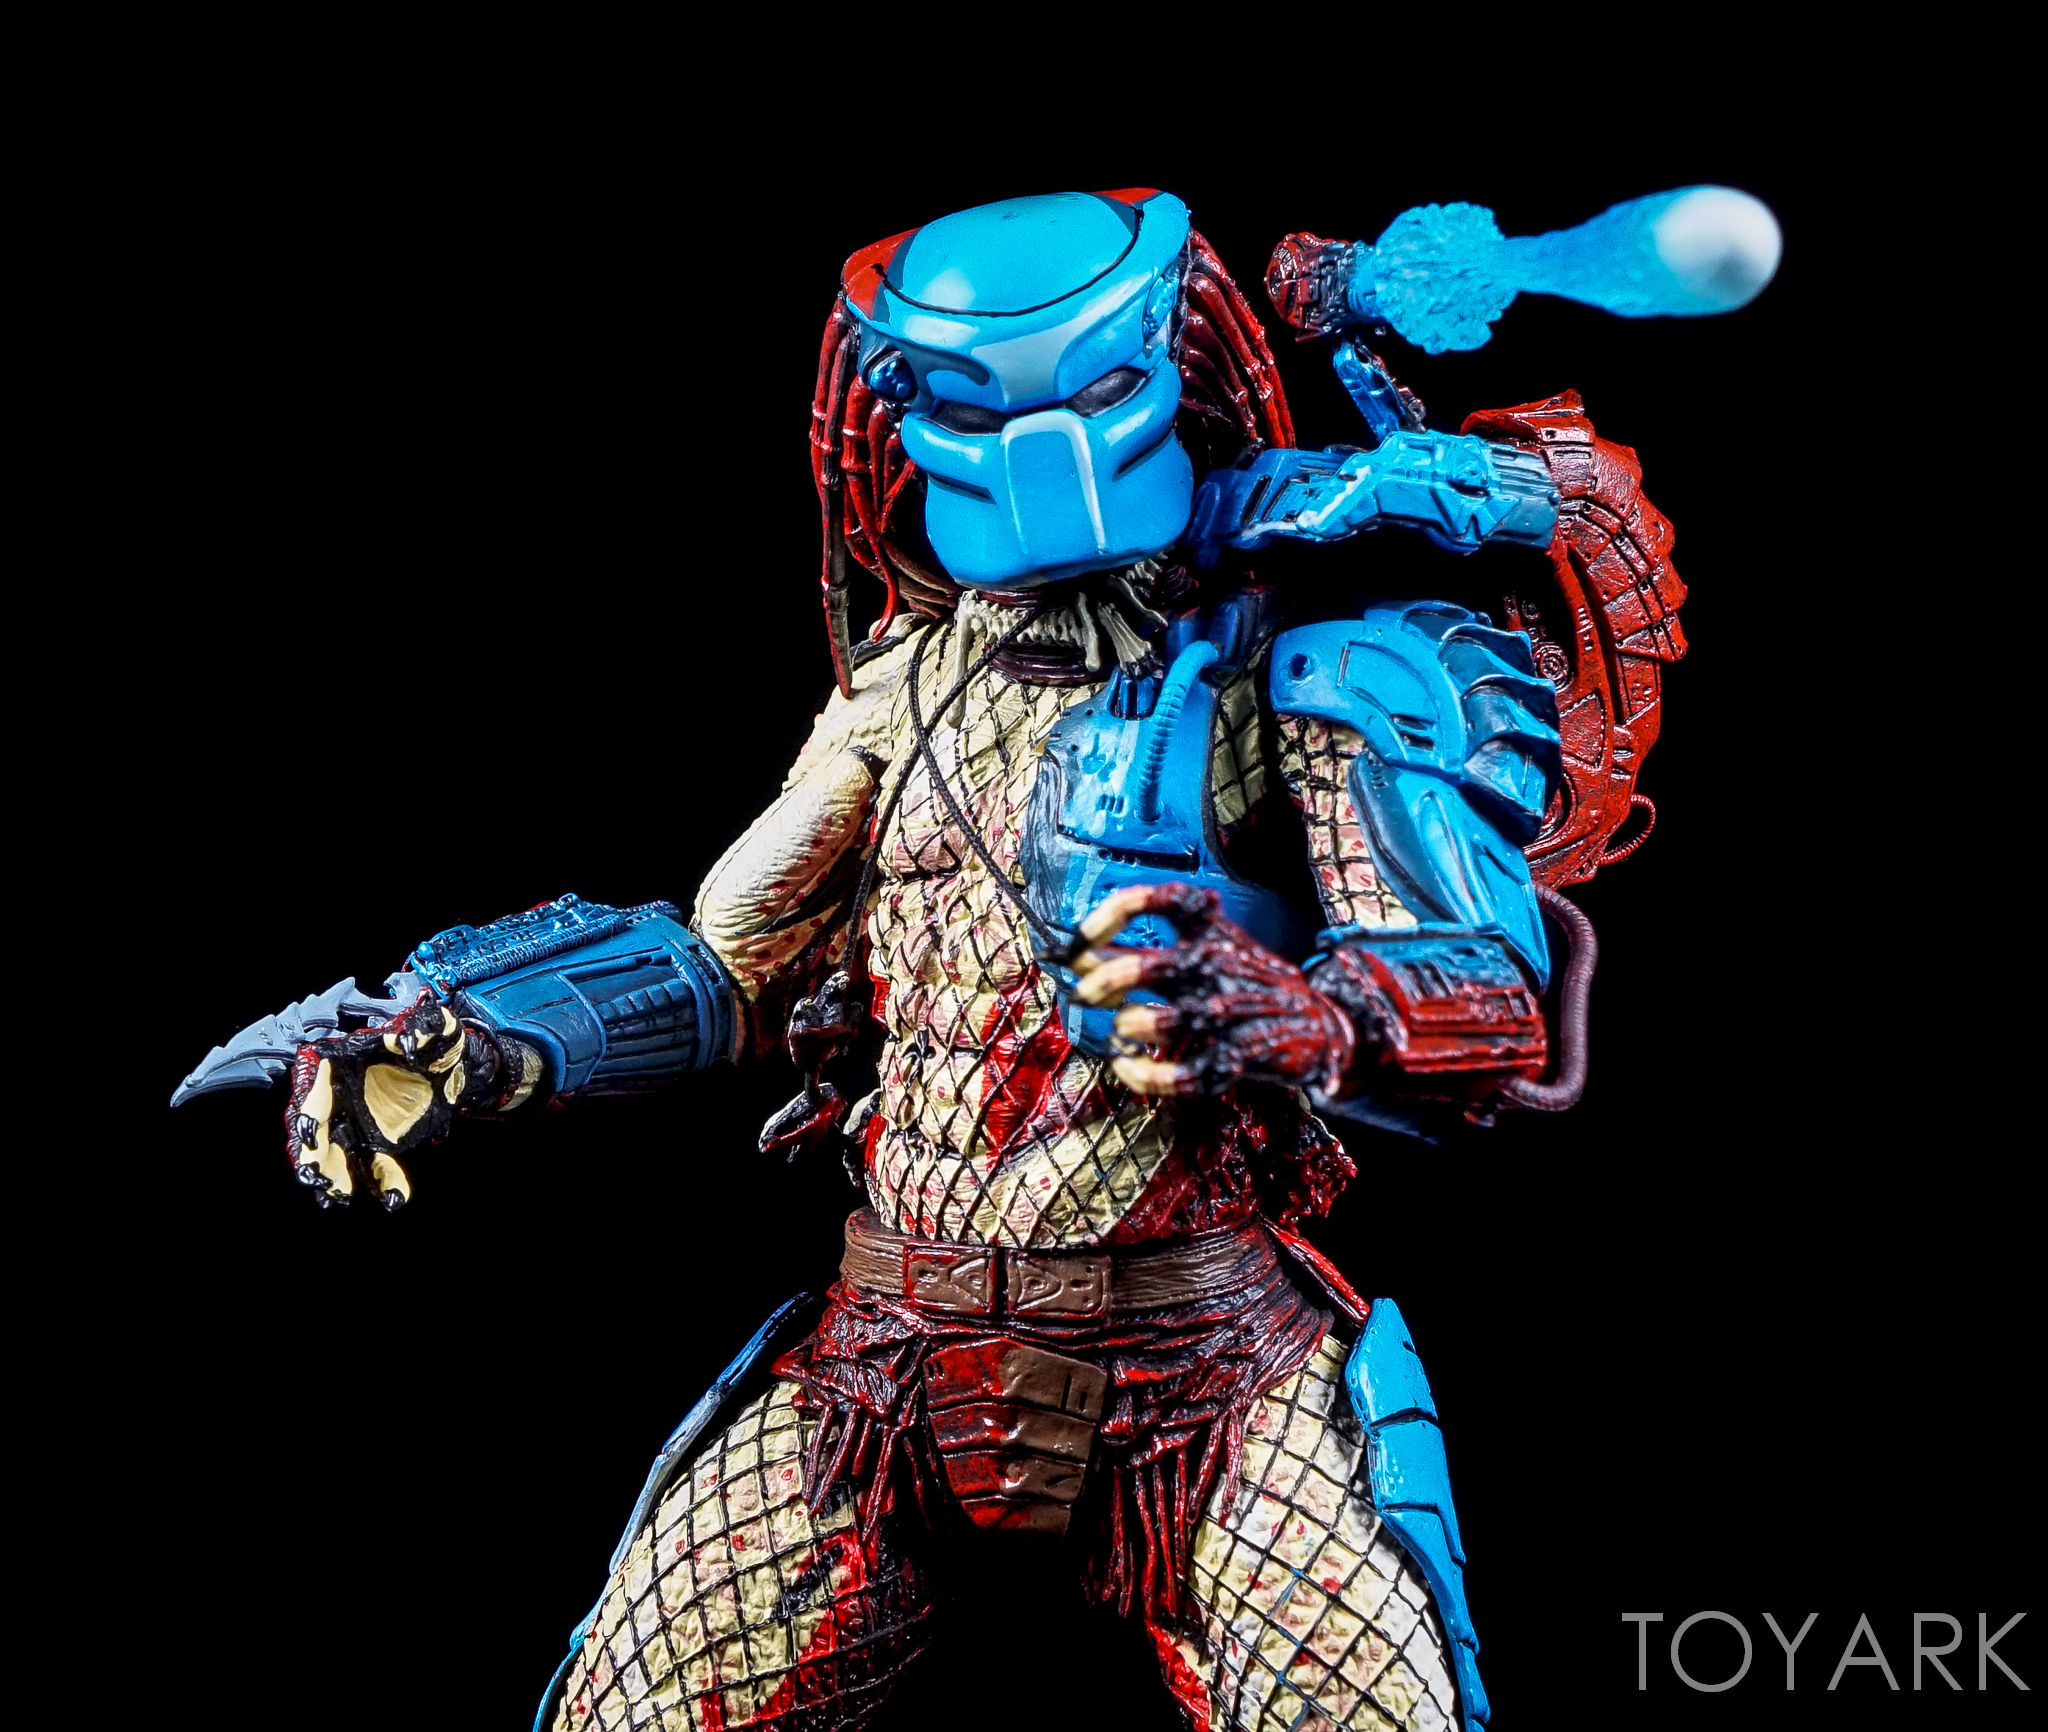 http://news.toyark.com/wp-content/uploads/sites/4/2016/09/NECA-Predator-Accessory-Pack-037.jpg